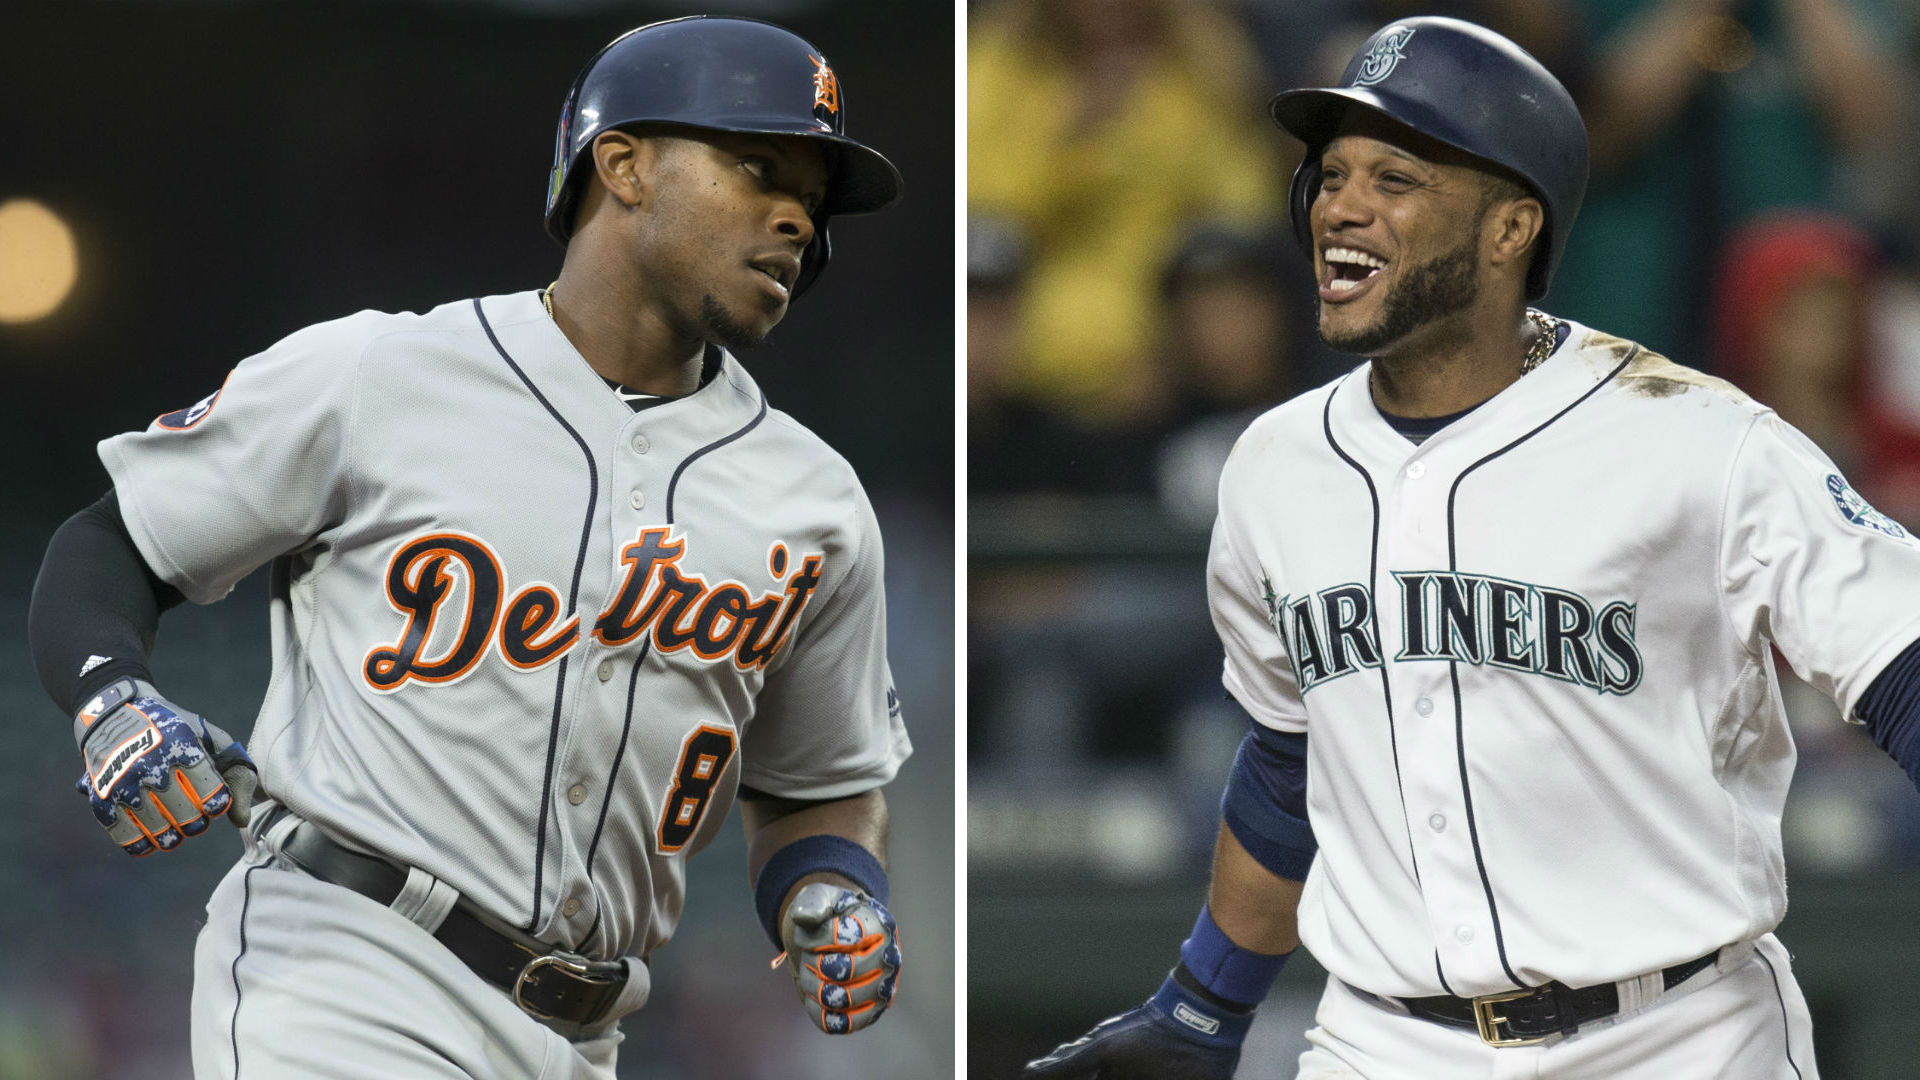 Mariners 2B Cano named to All-Star Game as an injury replacement